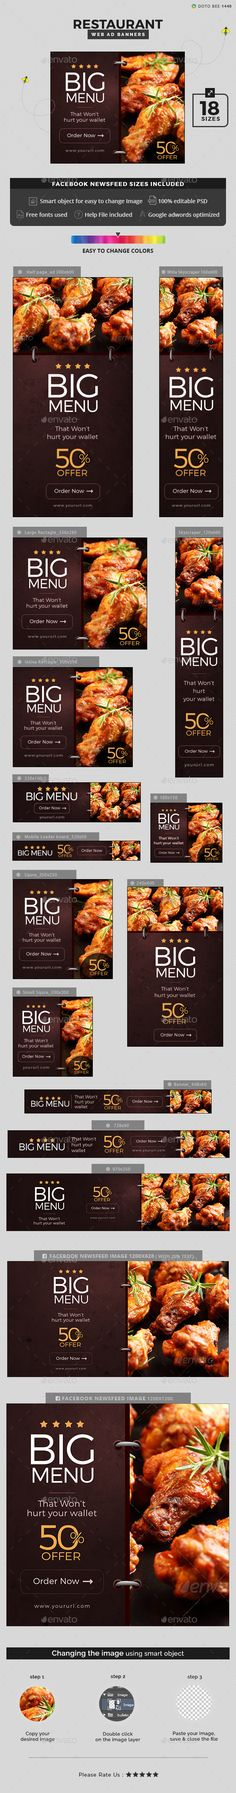 Restaurant Banners — Photoshop PSD #banners #Google adwords banner • Available here → https://graphicriver.net/item/restaurant-banners/16360272?ref=pxcr